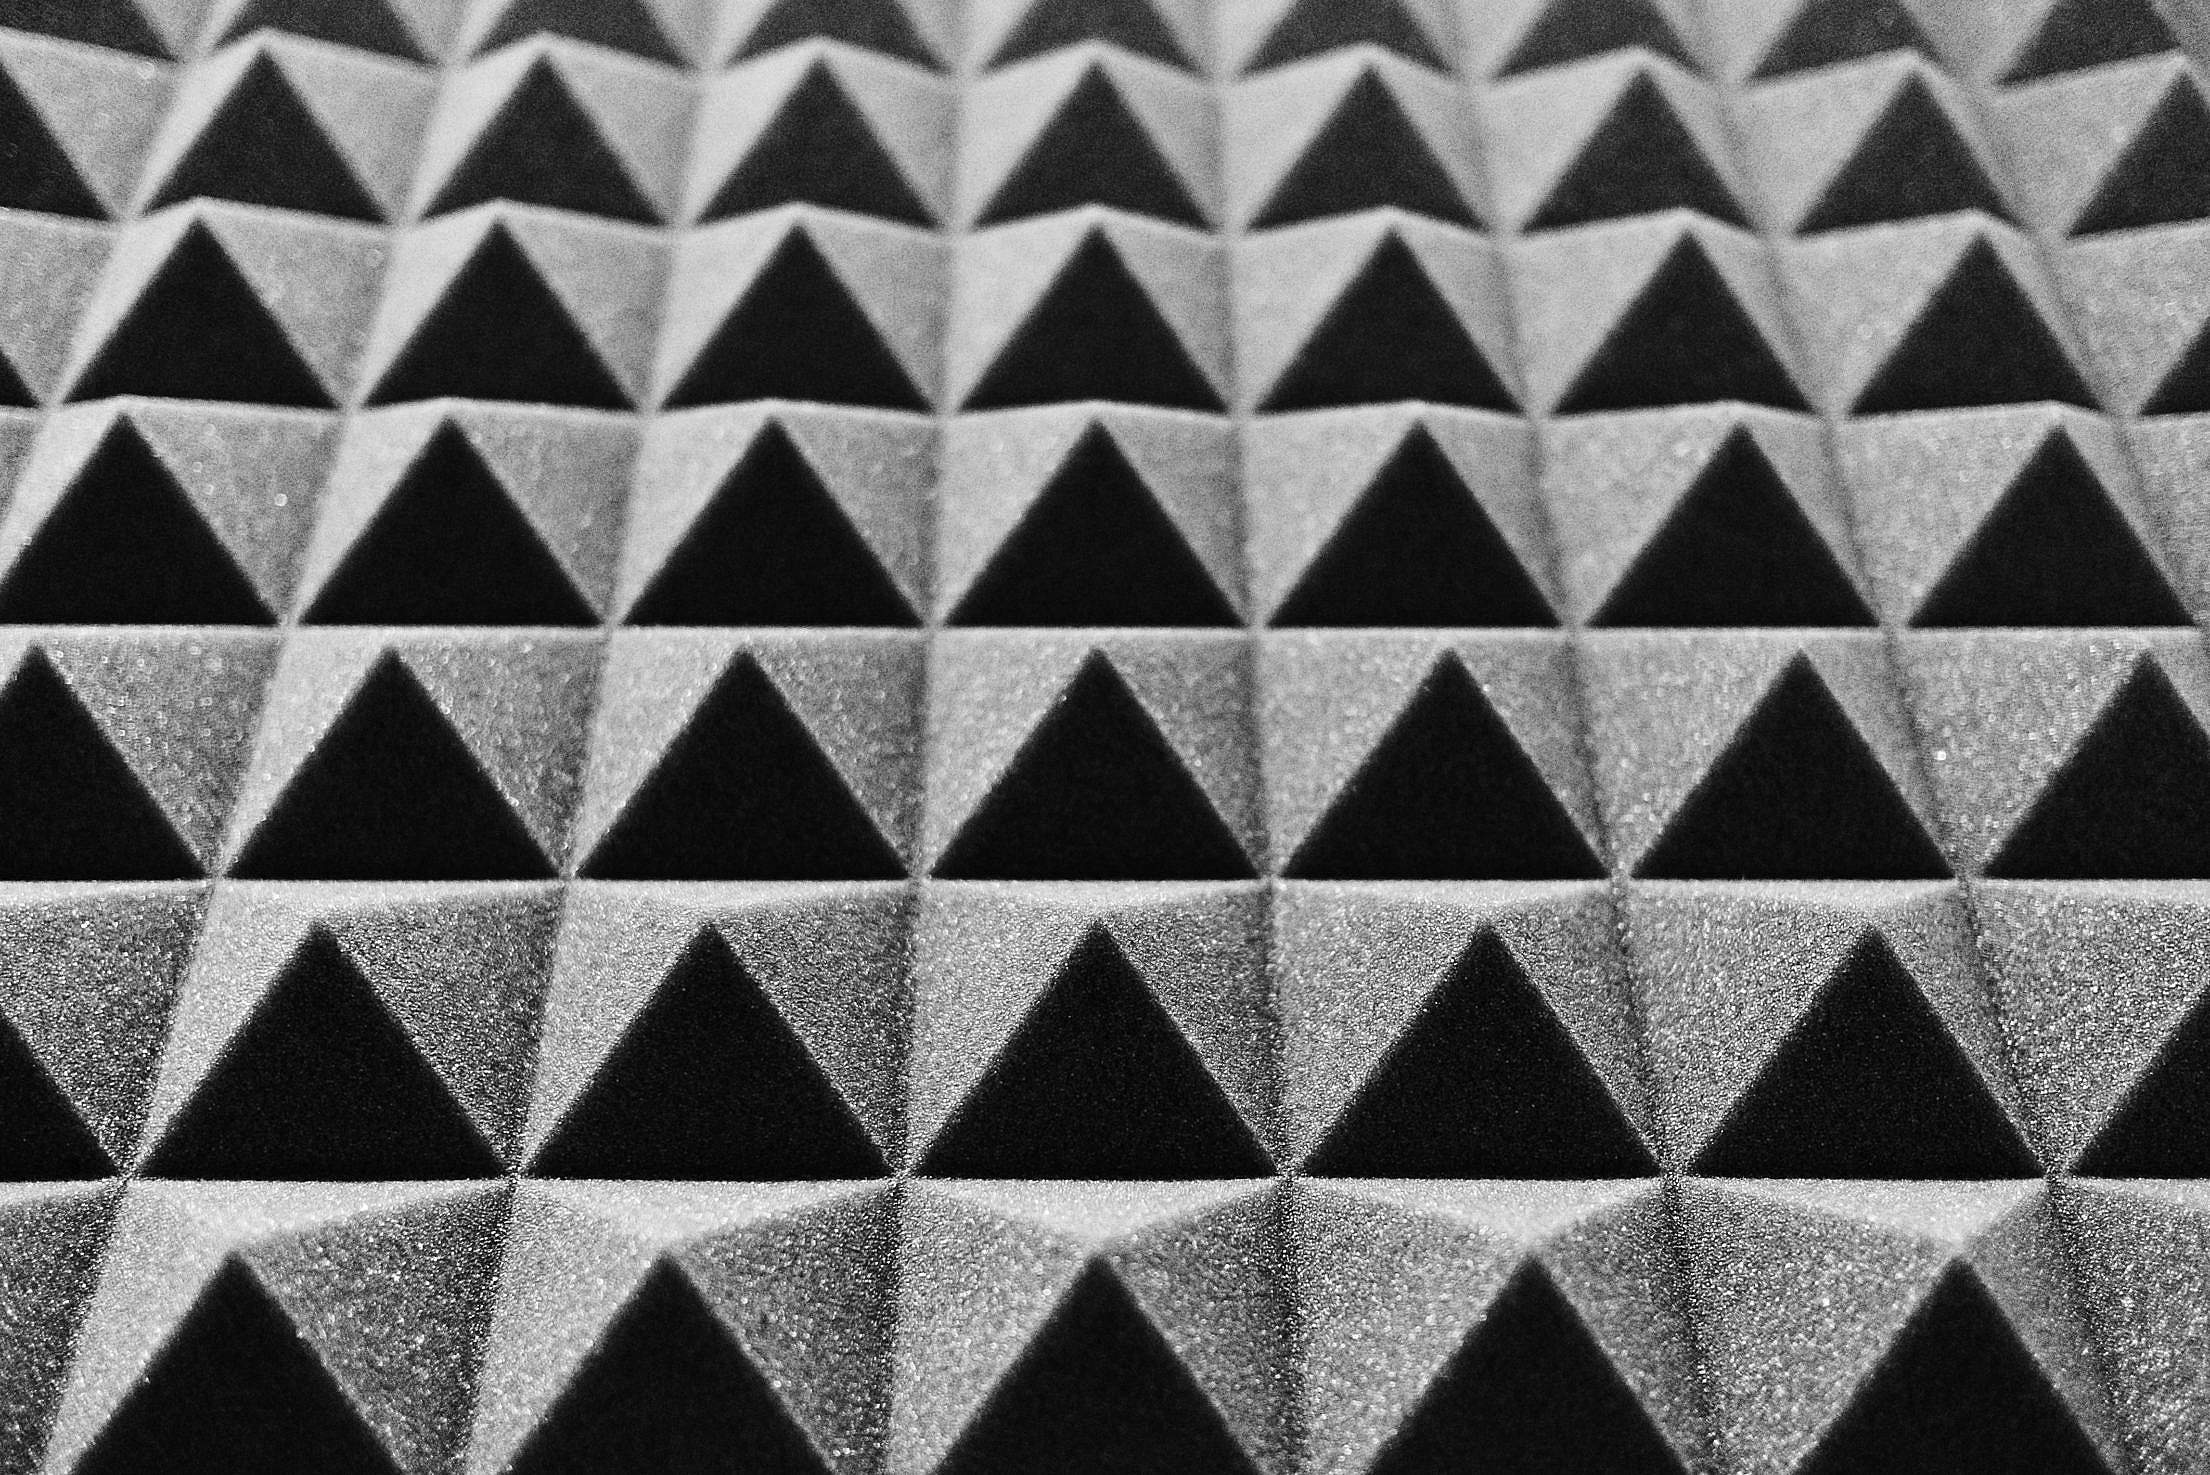 Acoustic Foam in a Music Studio Free Stock Photo